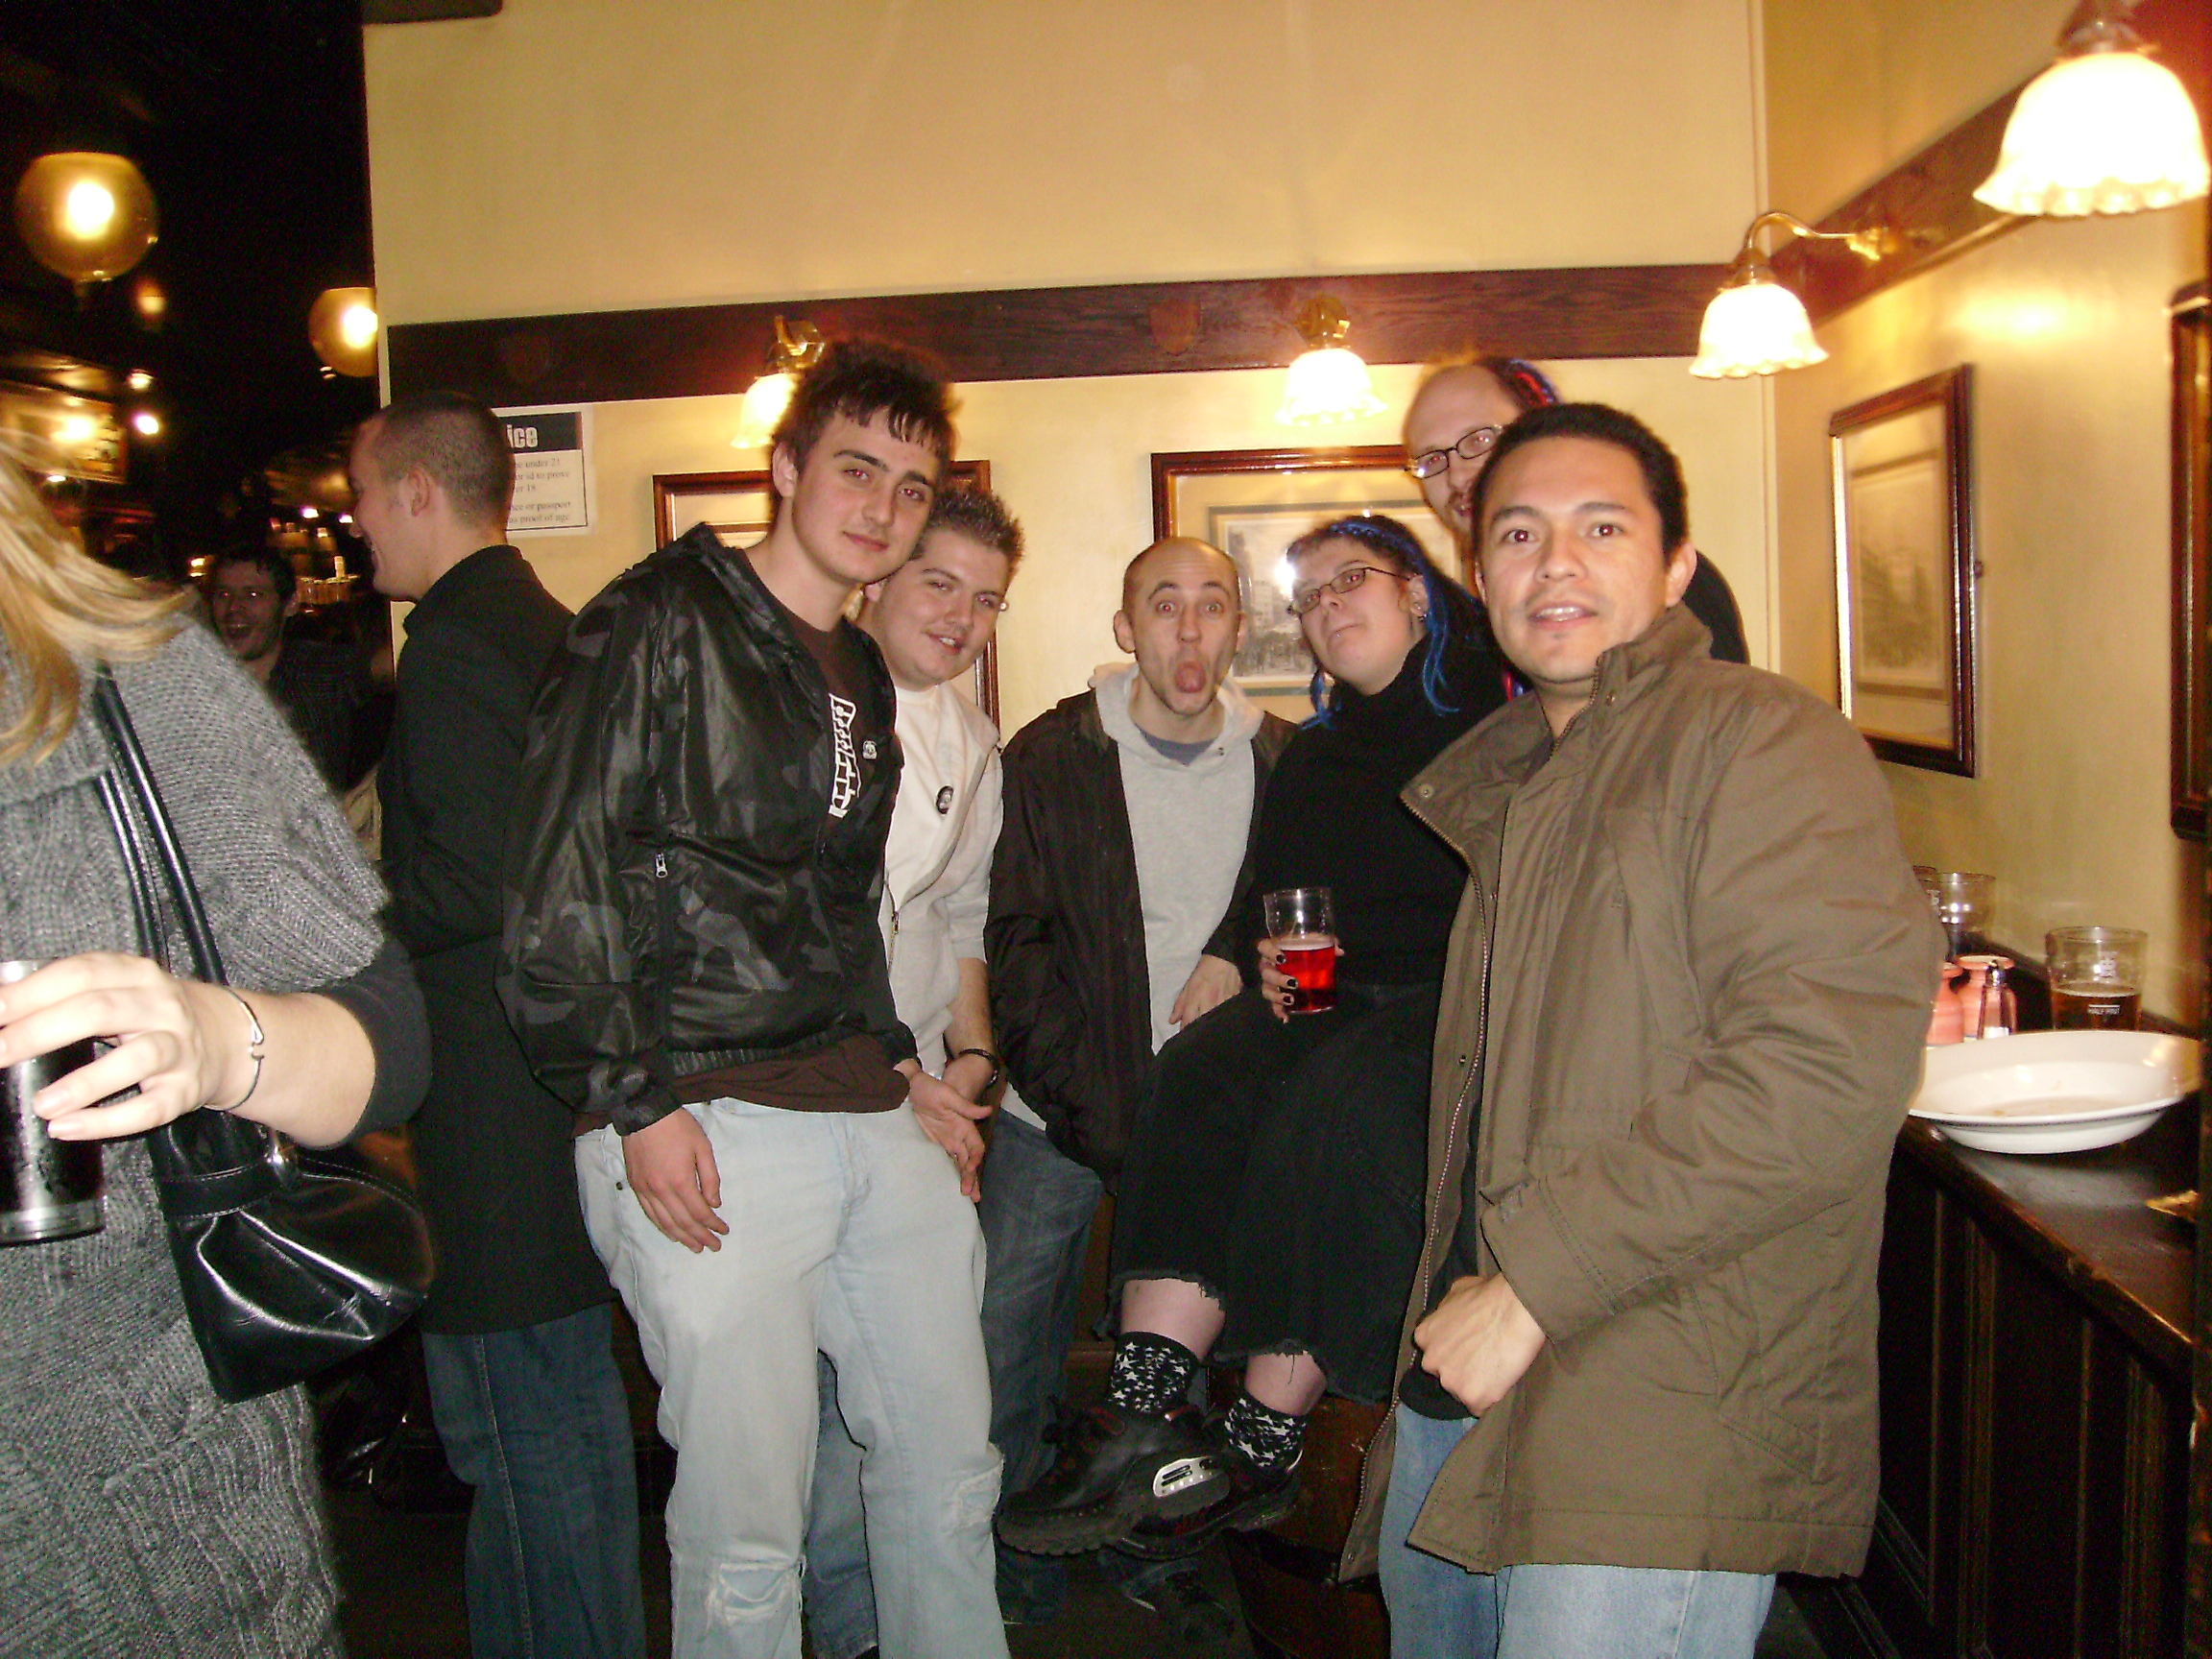 First meet up in 2008